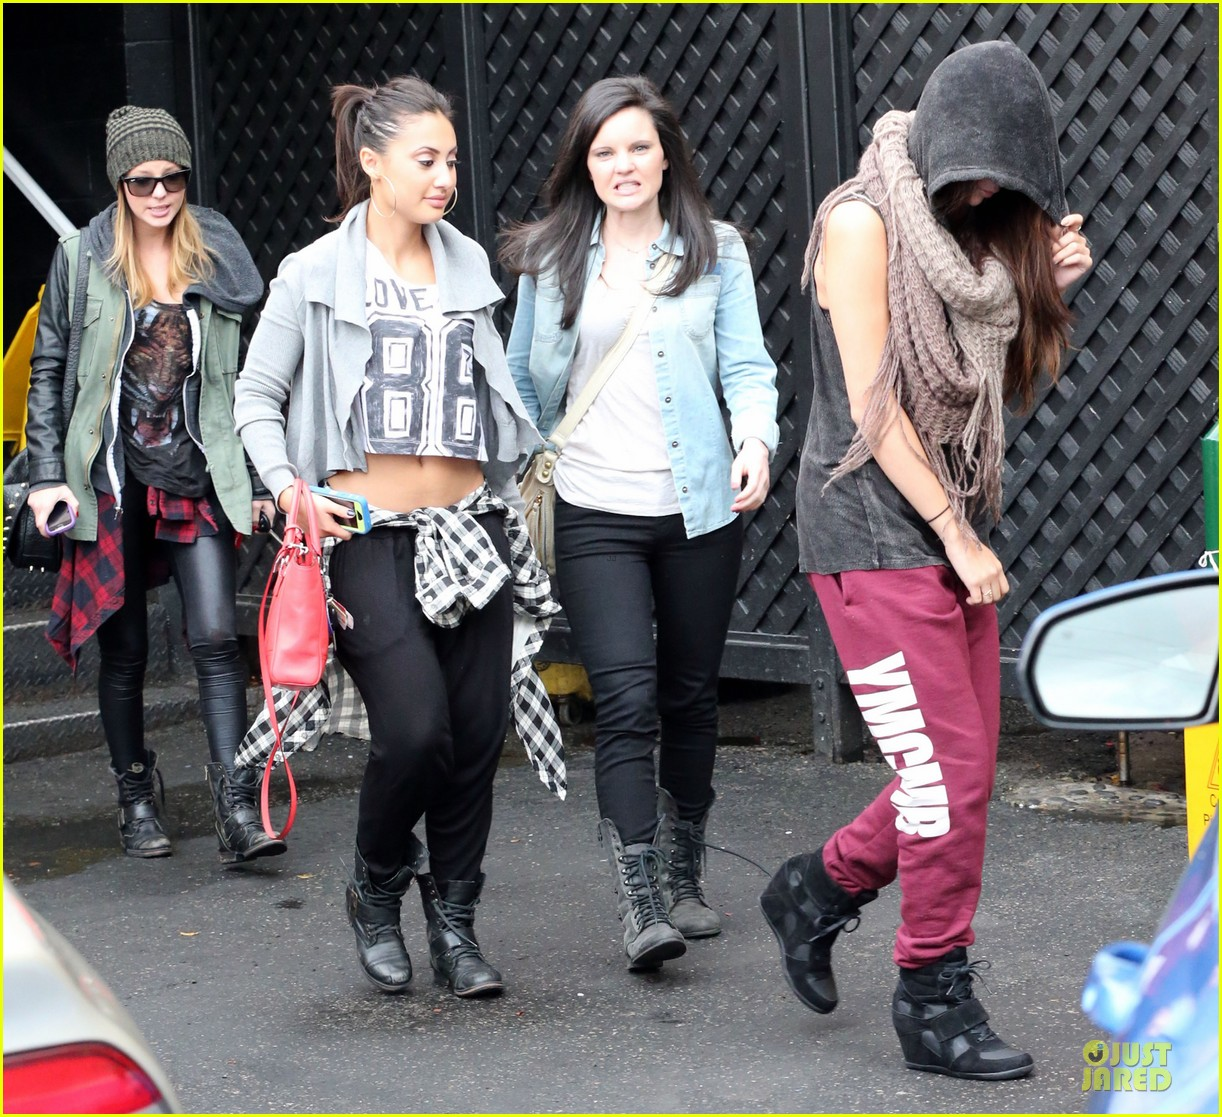 Francia Raisa And Selena Gomez Dancing Selena Gomez Dance Studio With